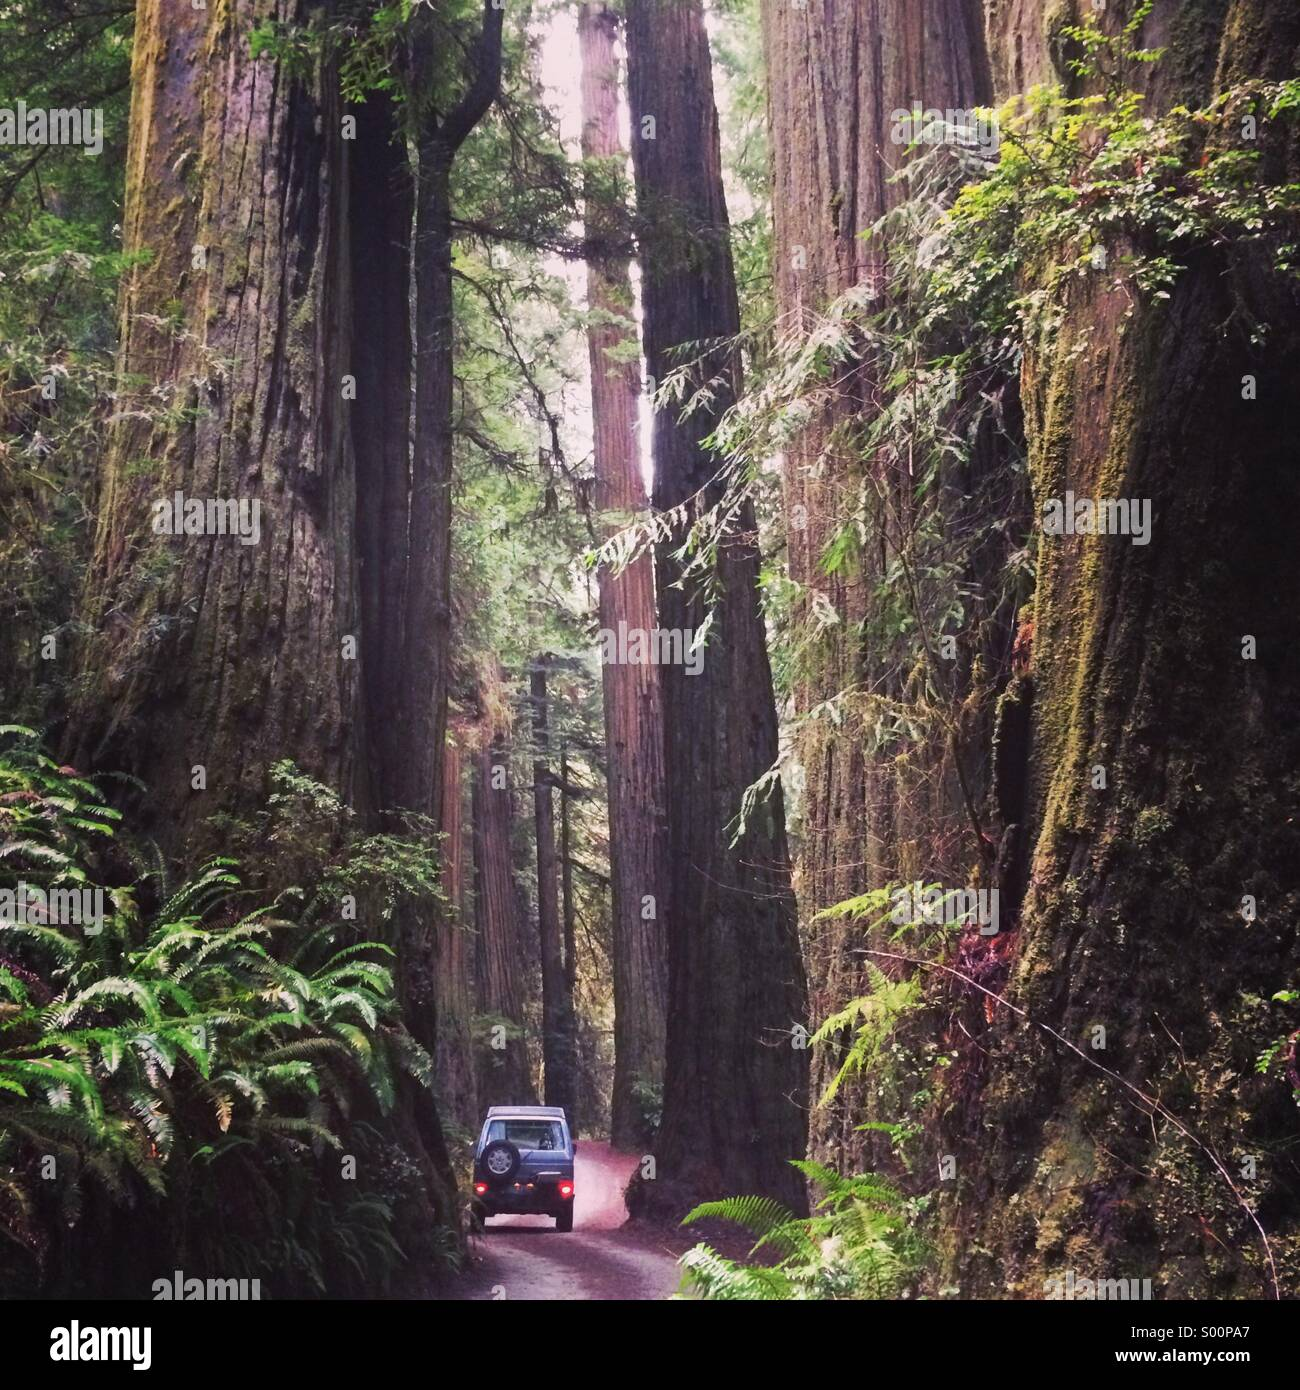 Exploring the giant redwoods of Northern California. Stock Photo